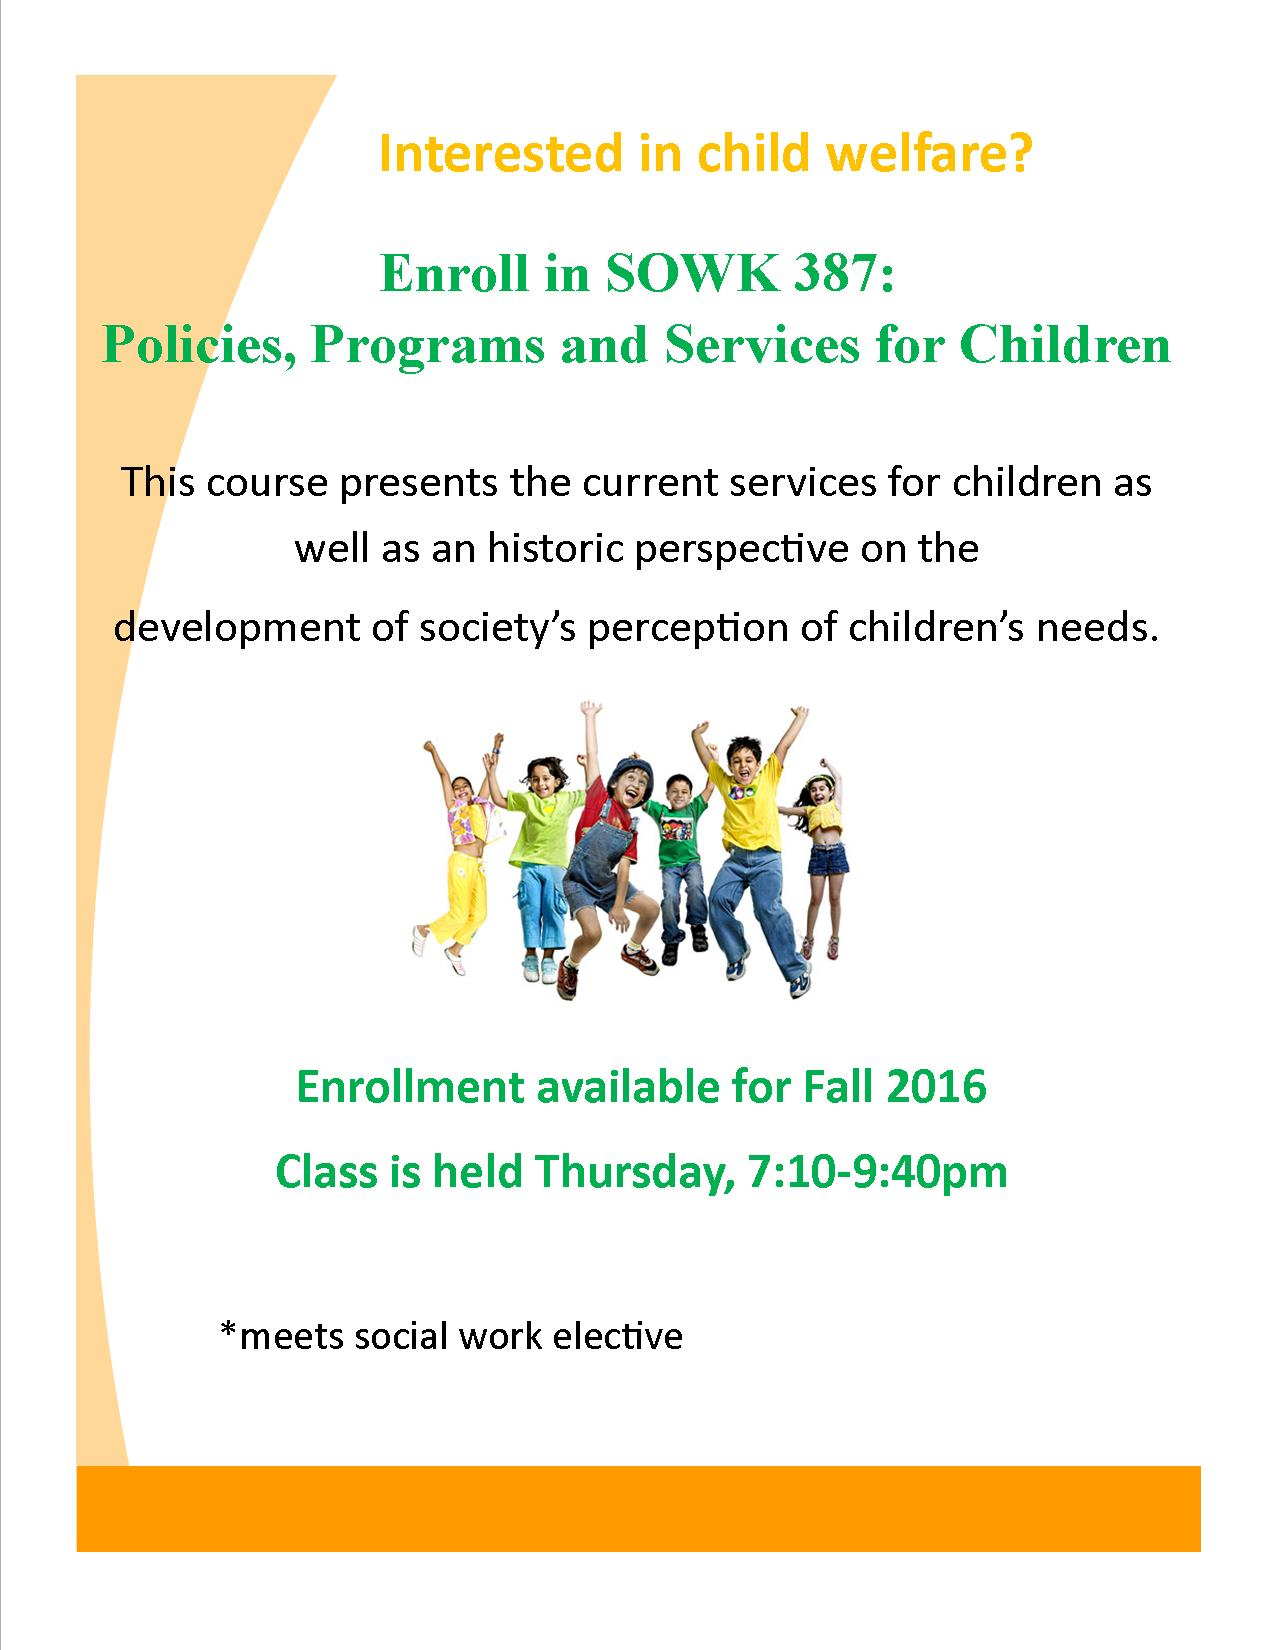 Enroll in SOWK 387- Child Welfare